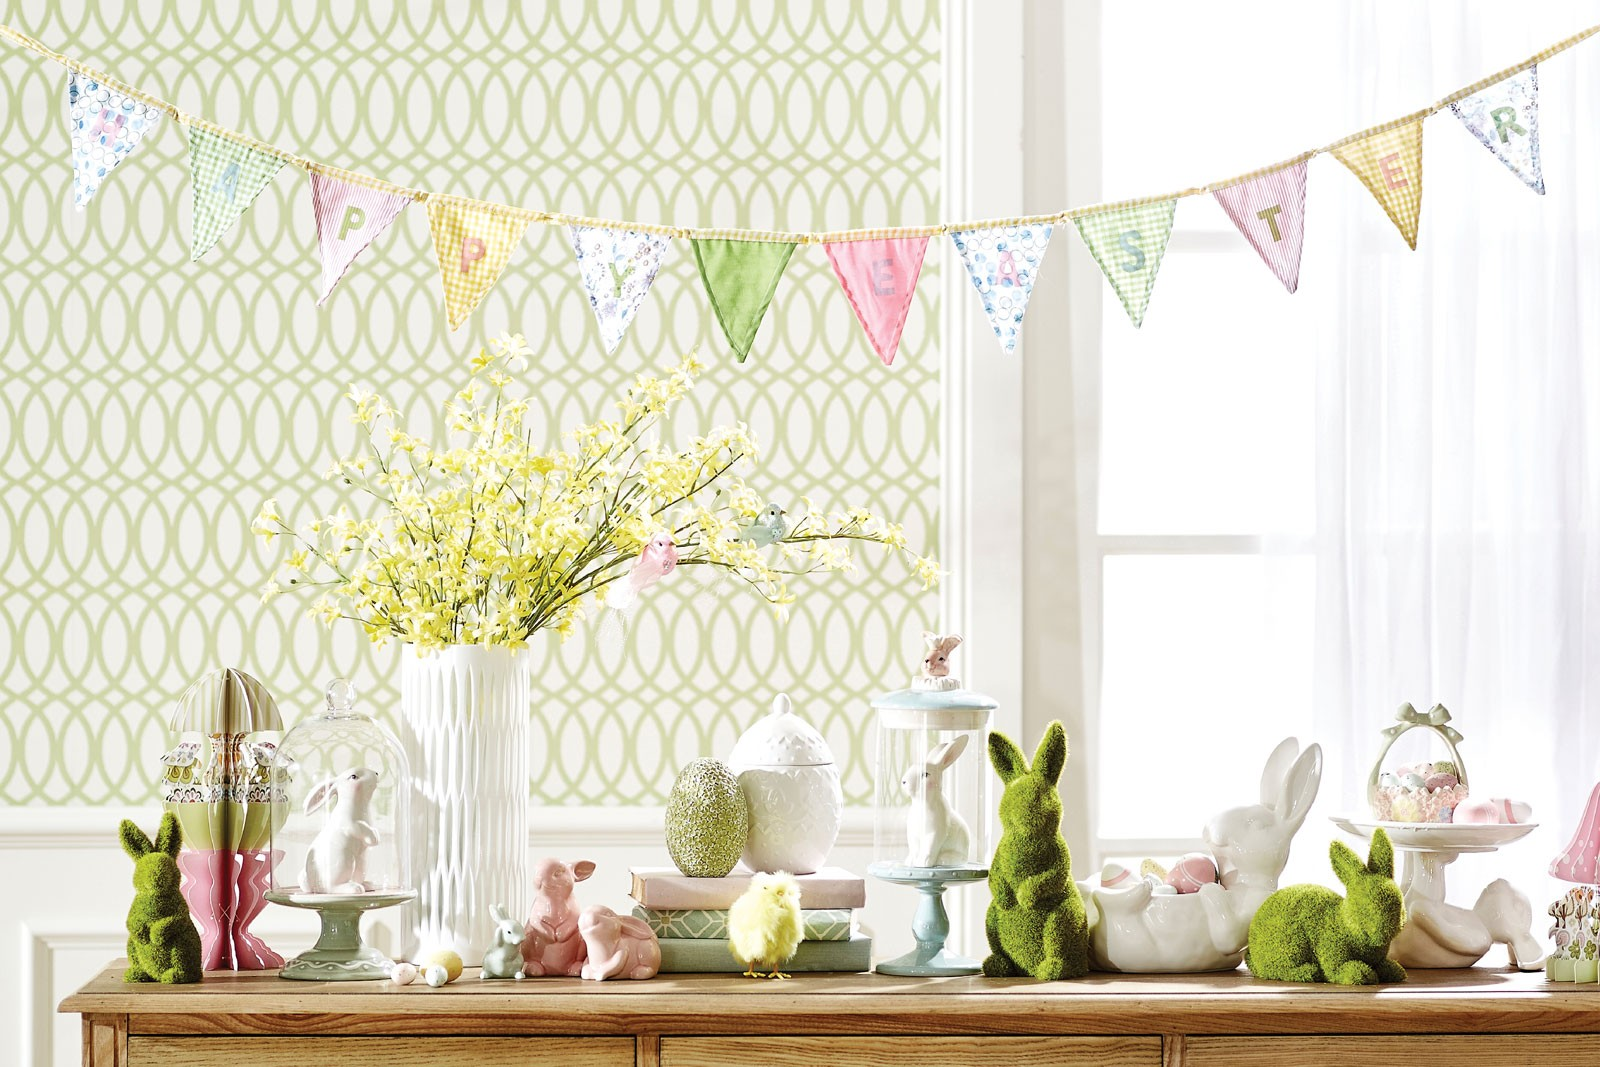 How to decorate for Easter bunting